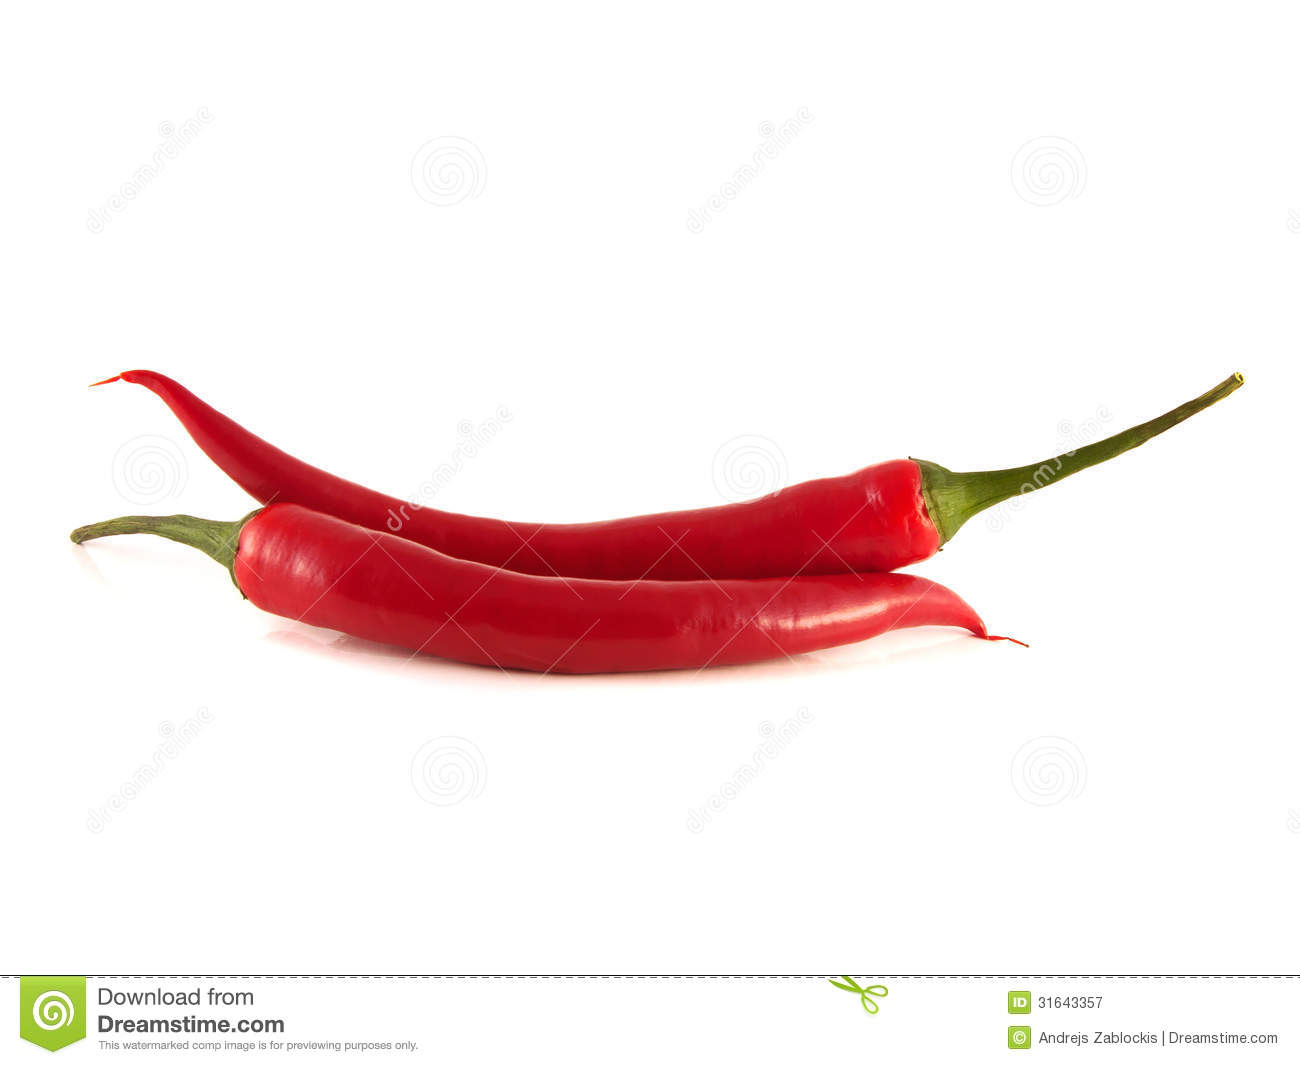 red chili hot peppers on white background royalty free stock photography image 31643357. Black Bedroom Furniture Sets. Home Design Ideas